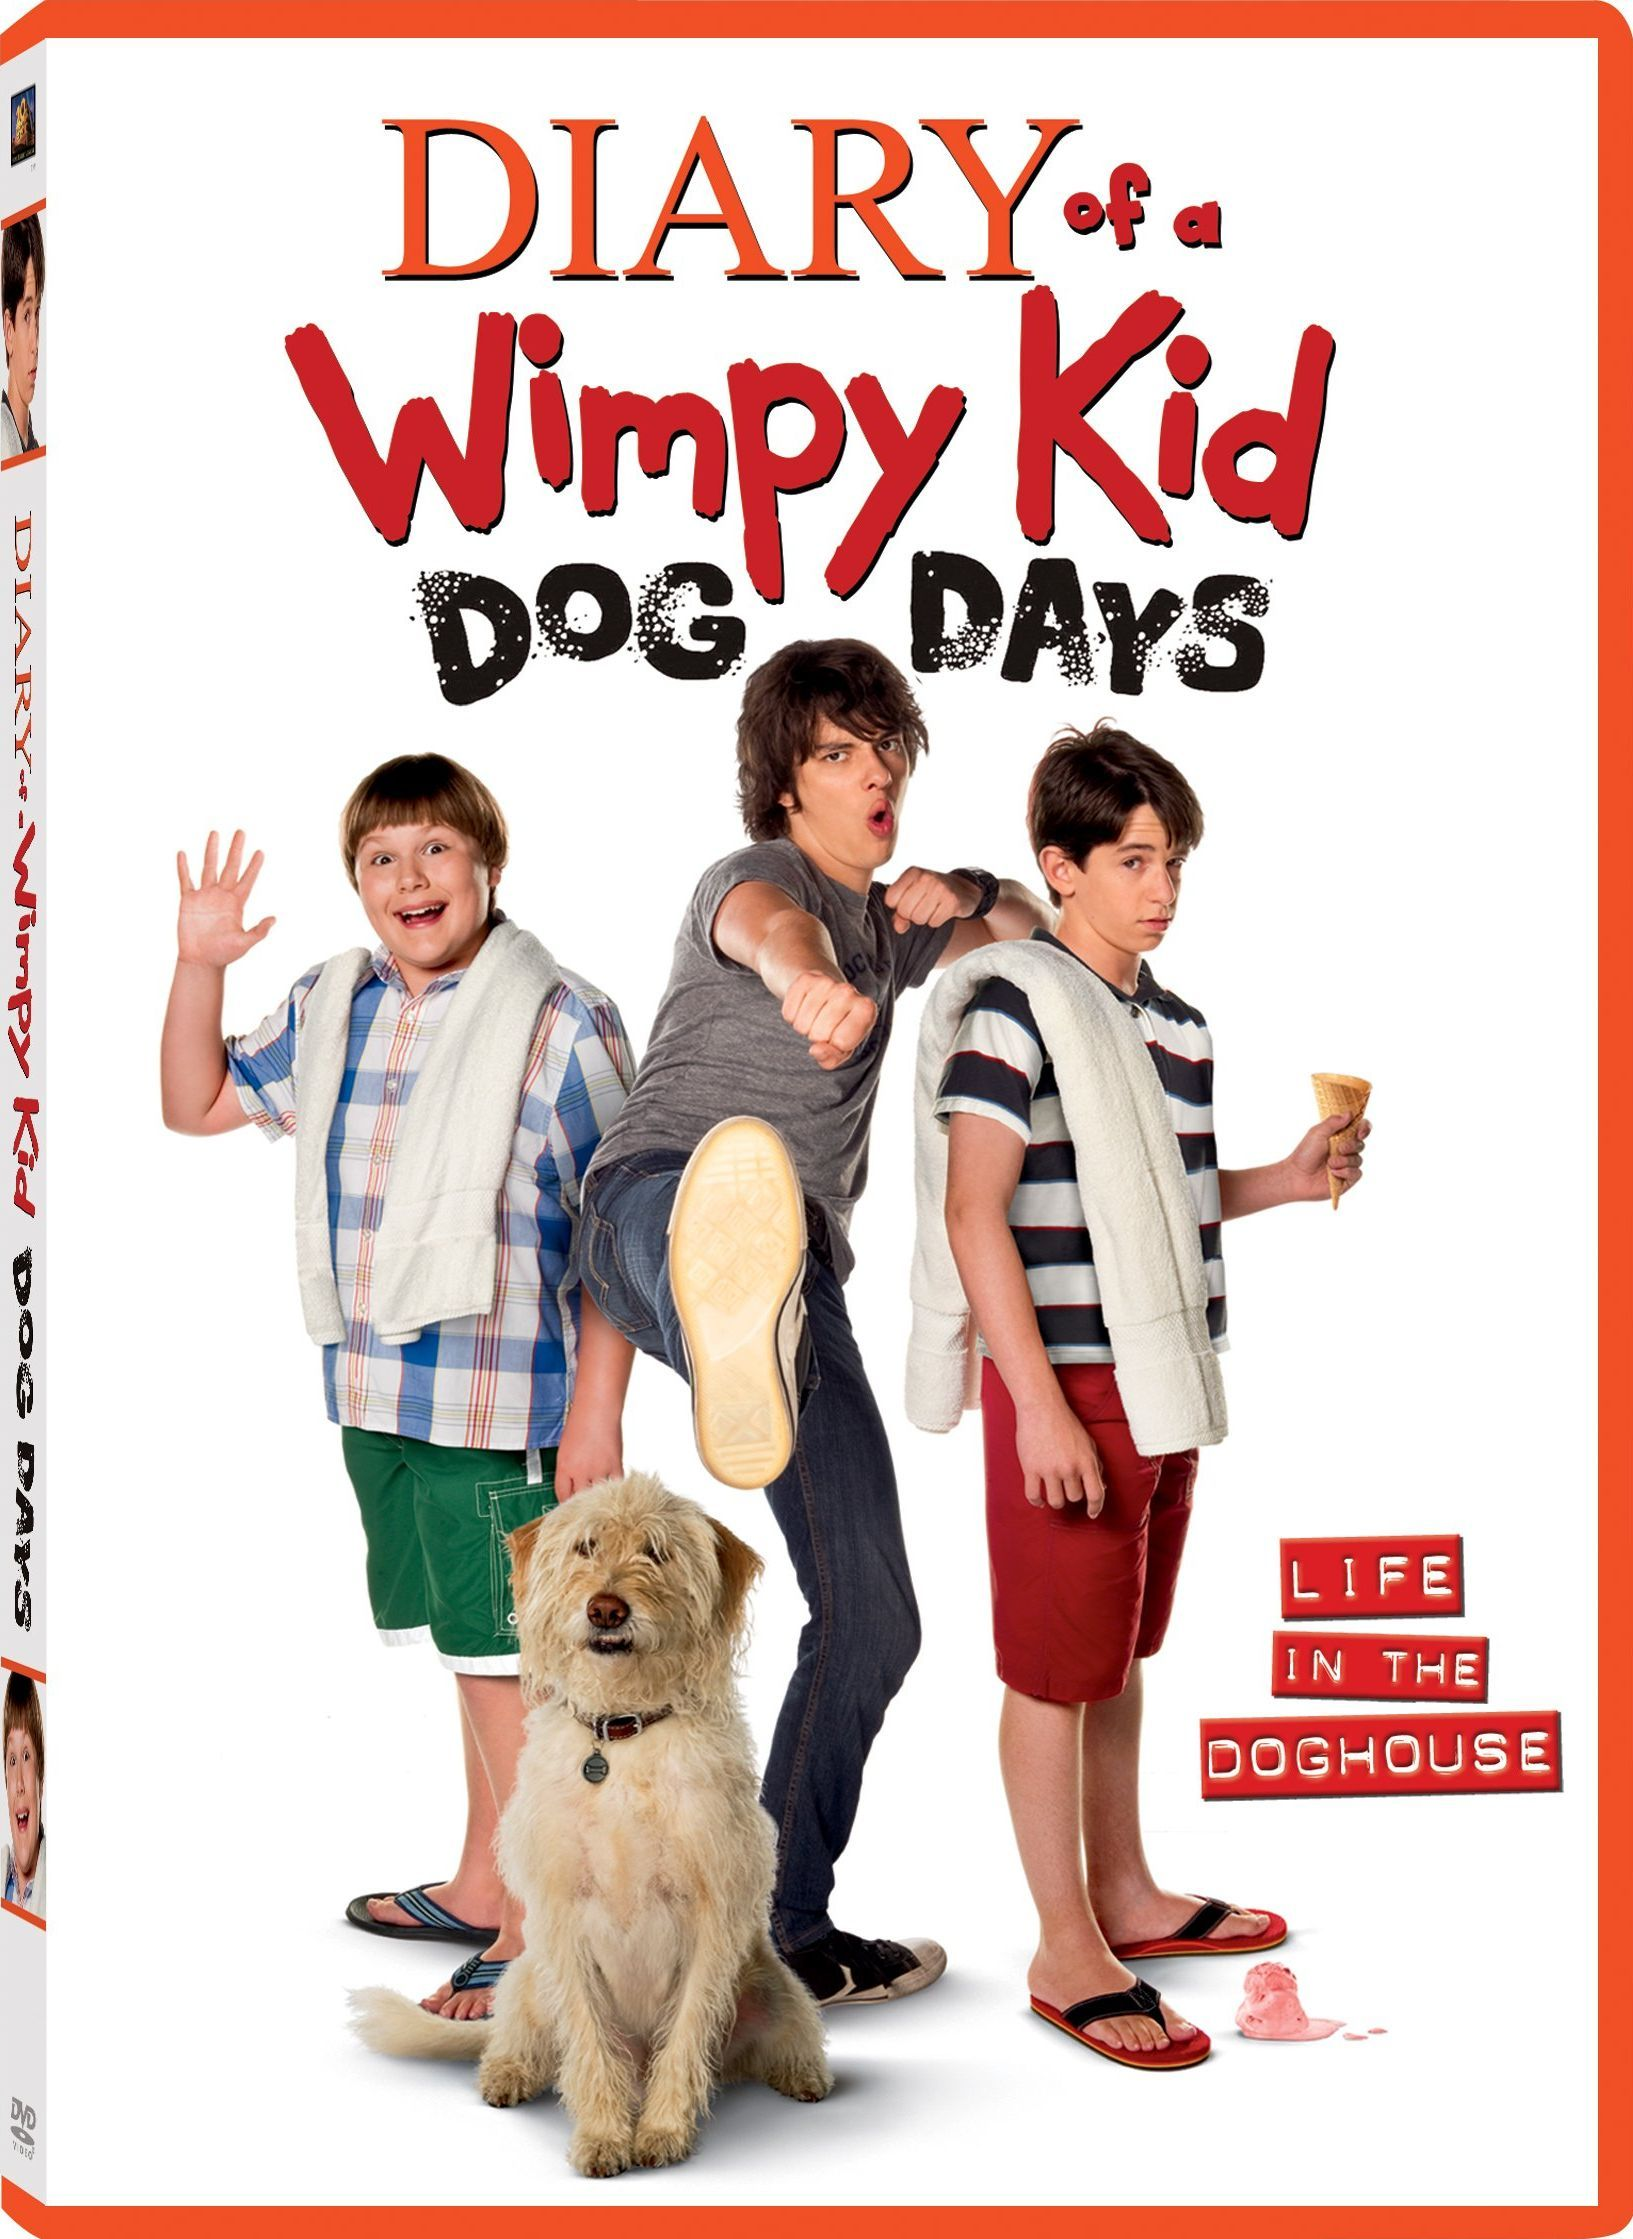 Diary of a wimpy kid dog days rodrick marry me lol jk diary of a wimpy kid dog days rodrick marry me lol jk maybe jk lol fandeluxe Images